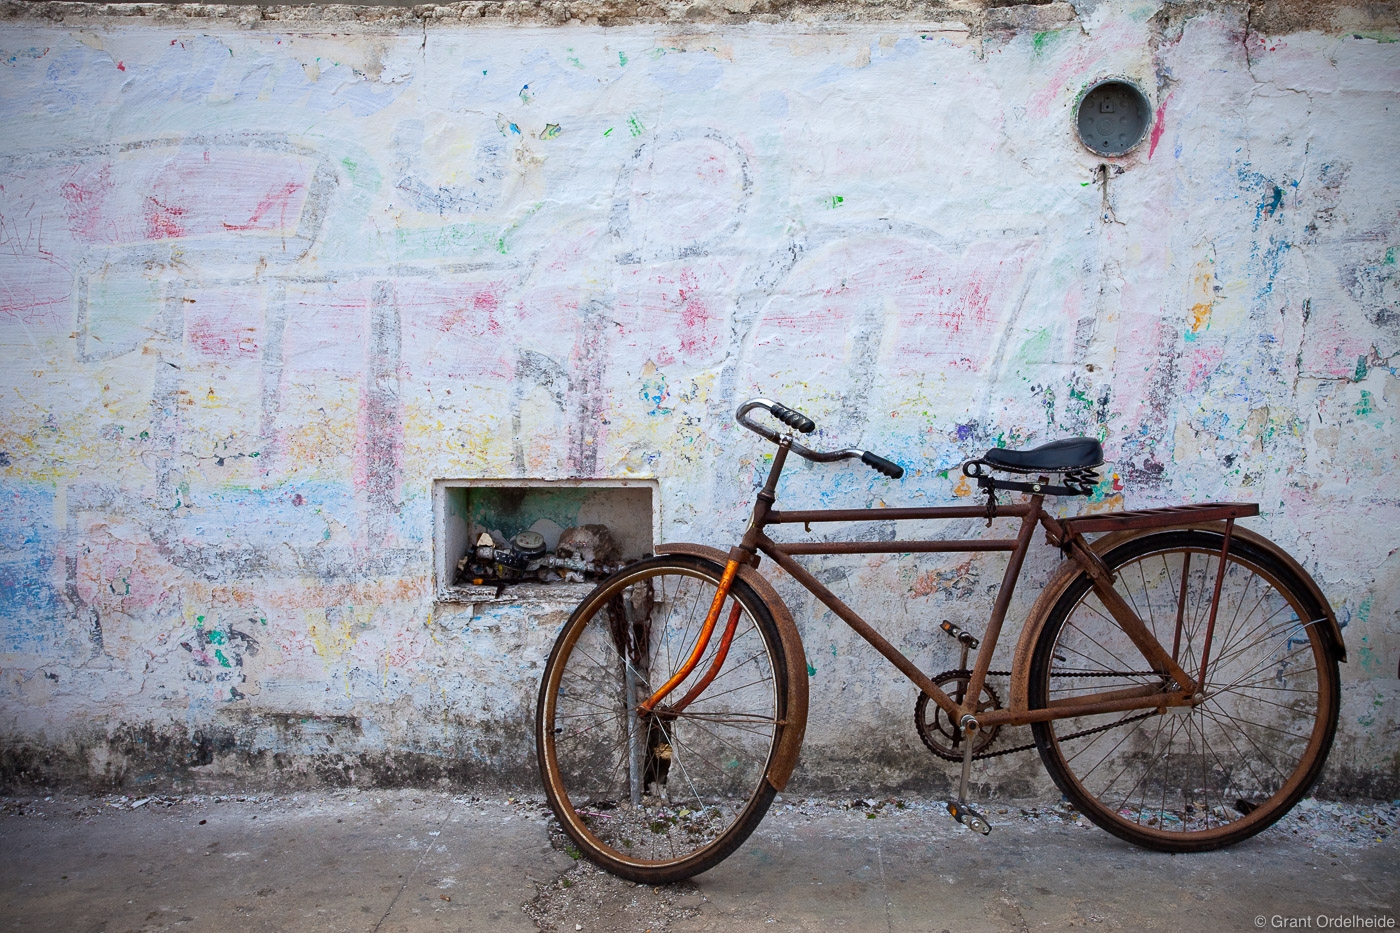 An old rusty bicycle in front of a faded wall.